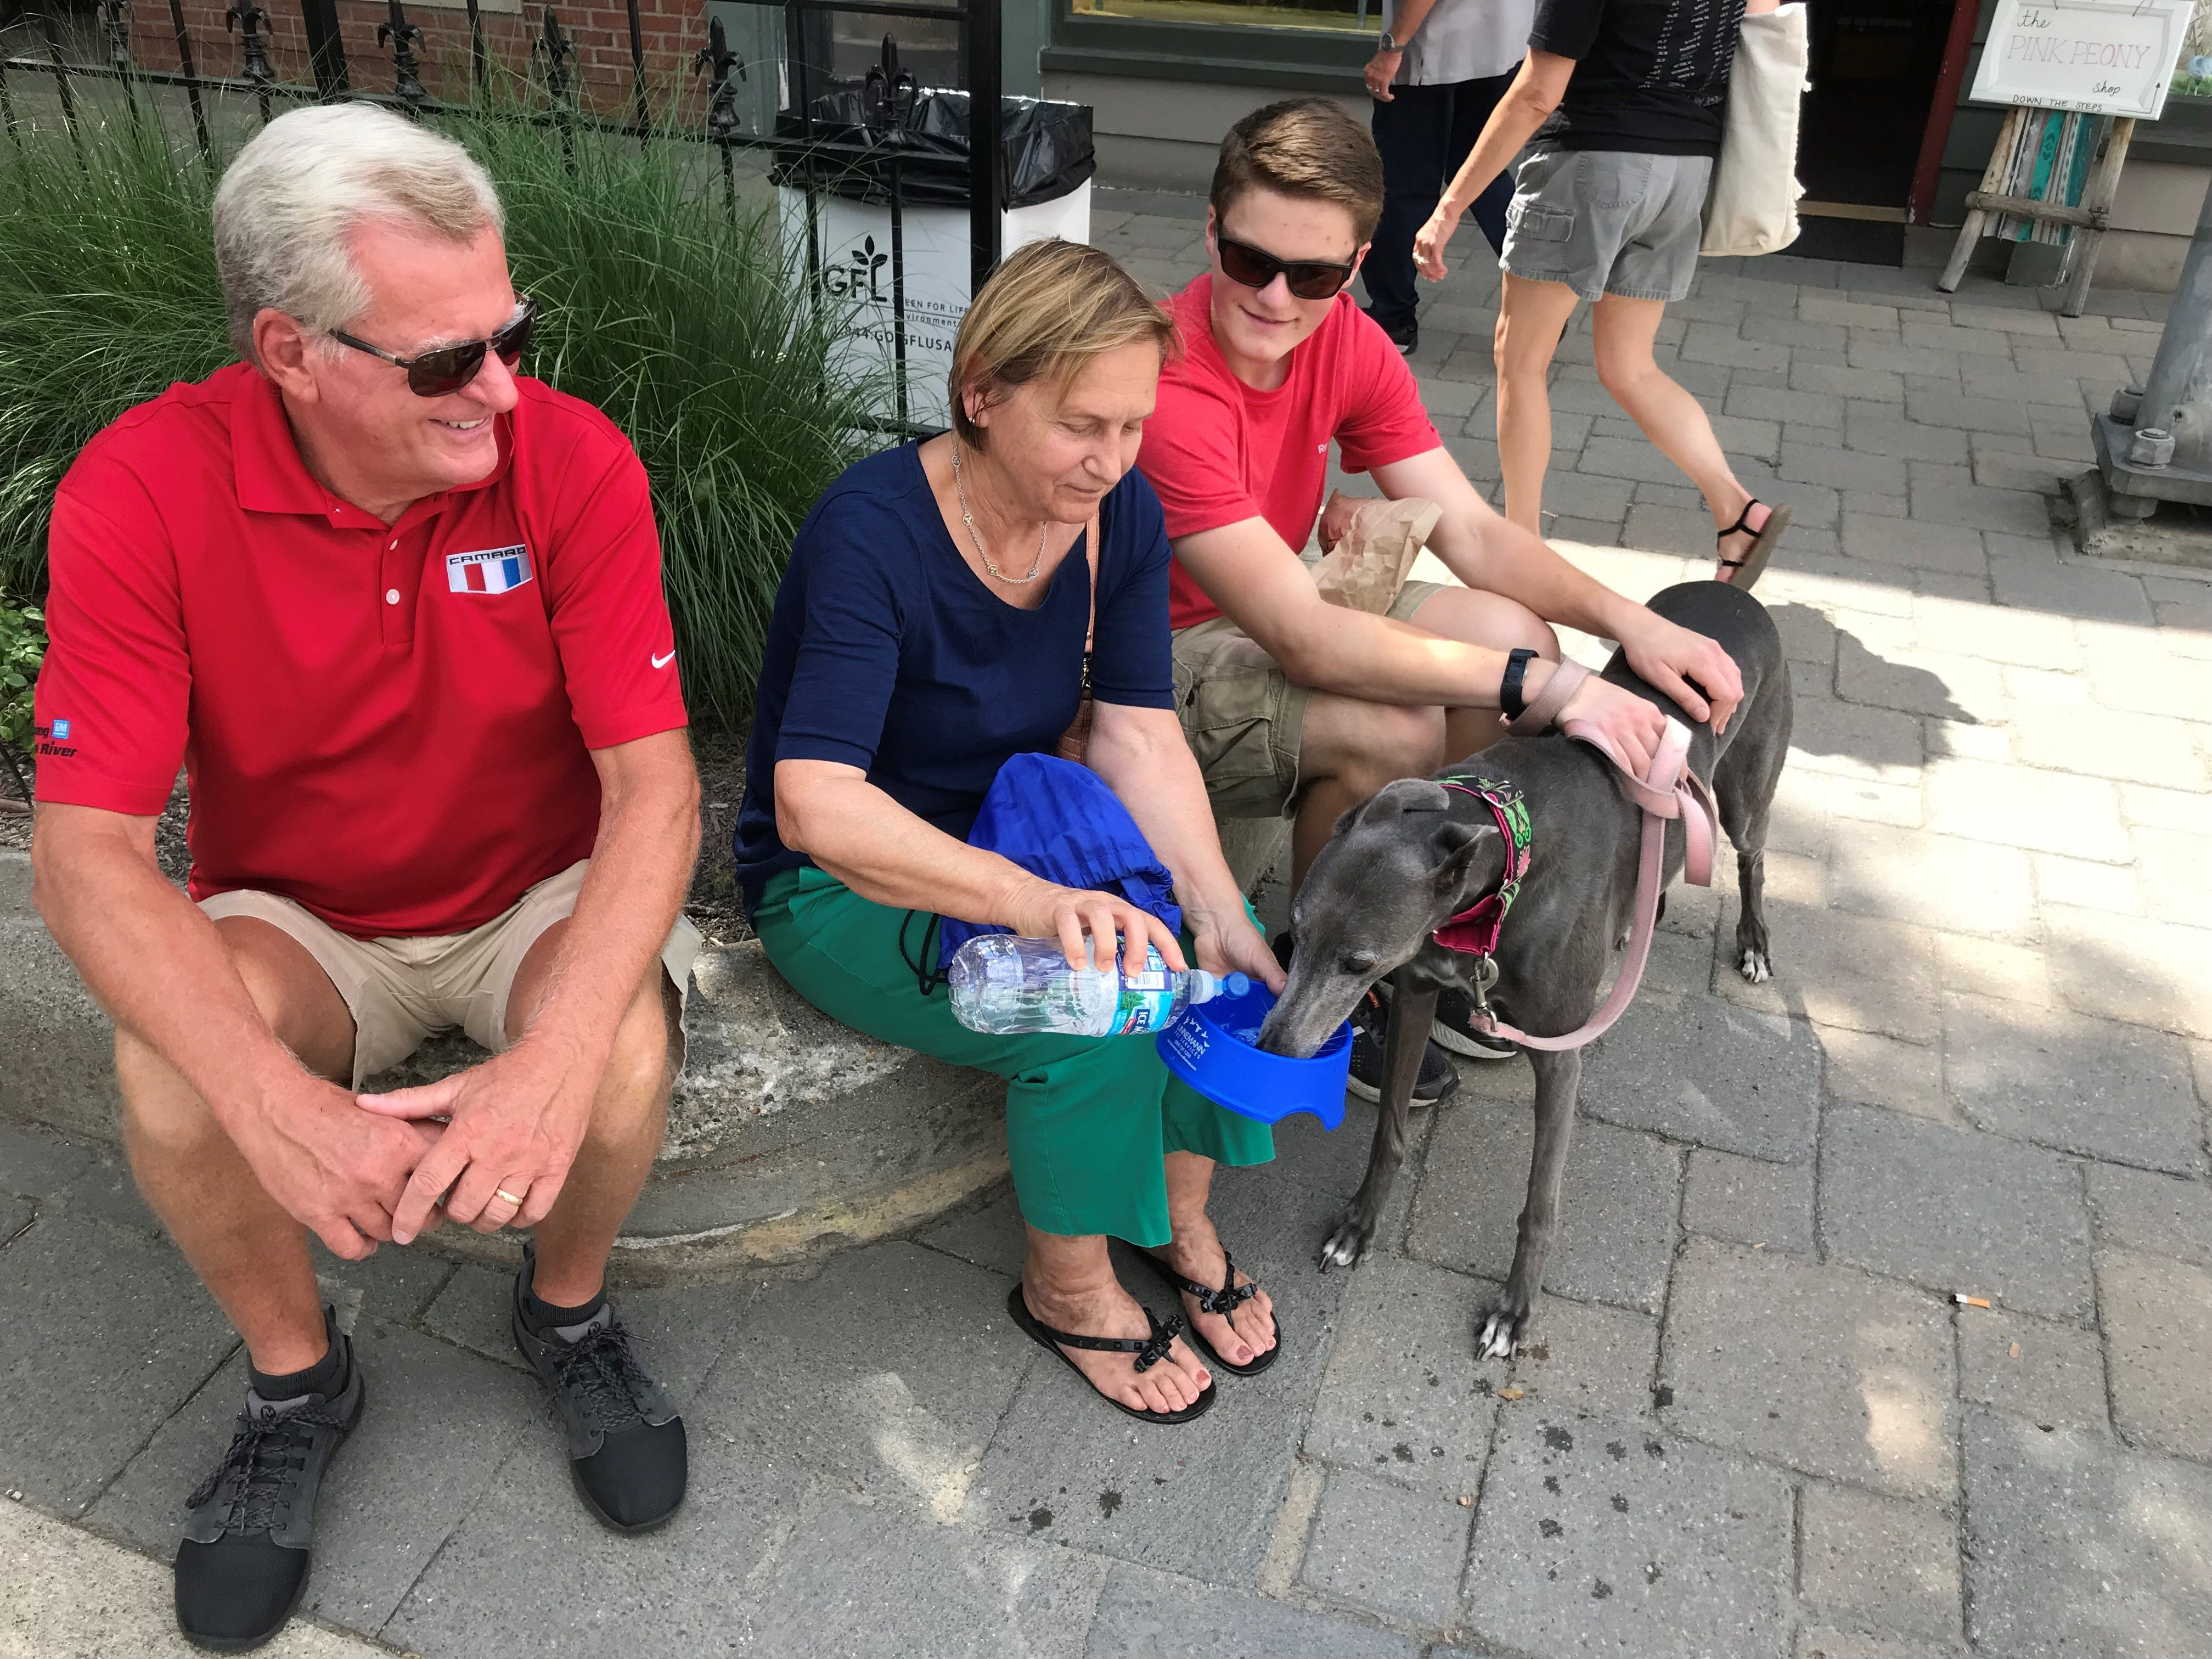 Wes (from left), Karol and John Spryshak make sure Gracie stays hydrated. Wes and Karol were up from Cincinnati to visit John's family. Gracie is visiting from Kentucky.